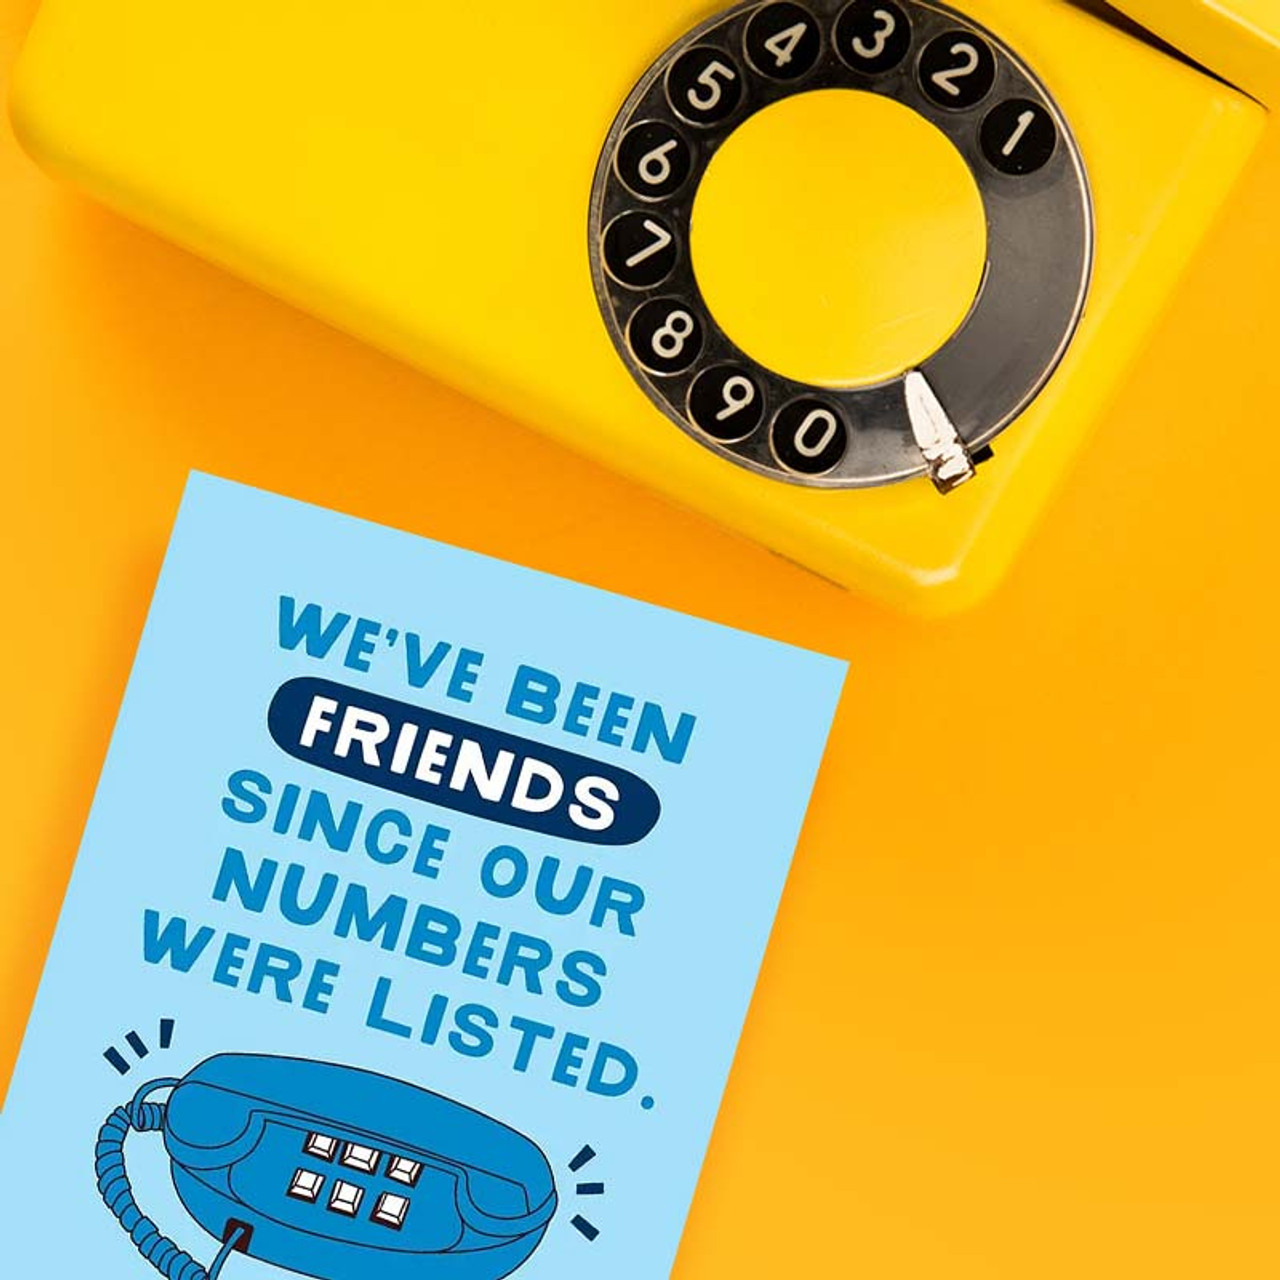 We've been friends forever greeting card.